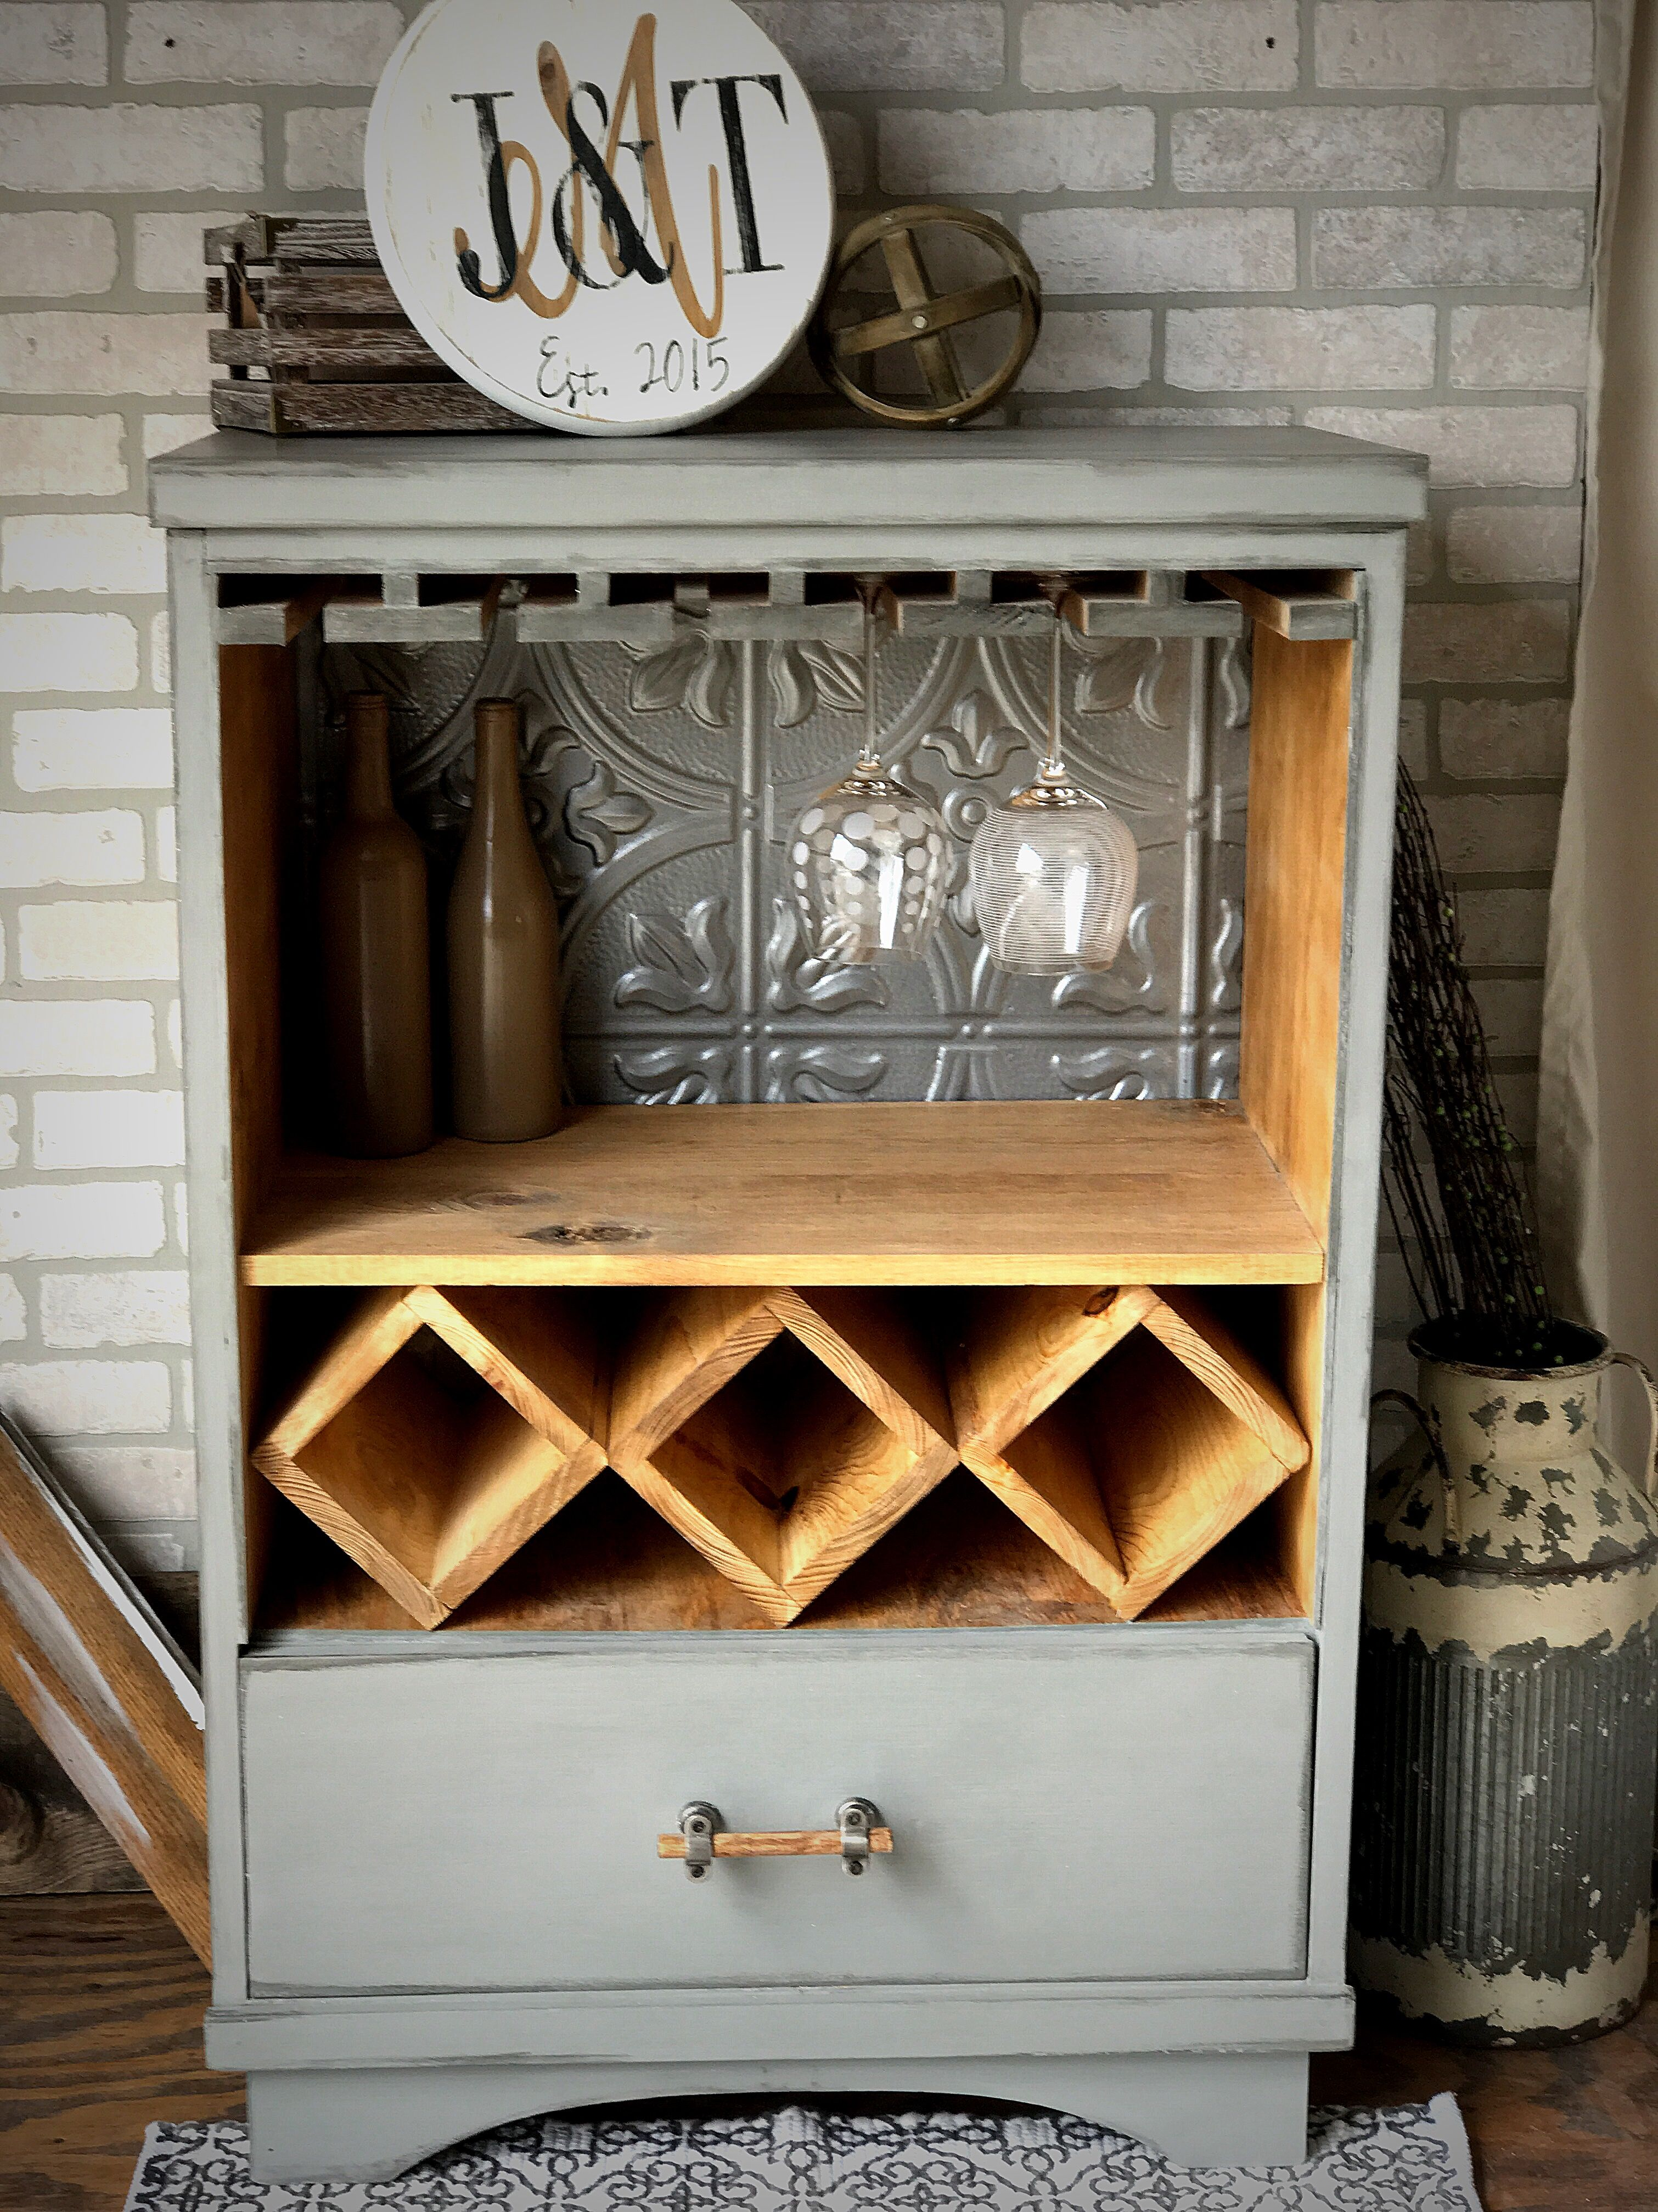 This Was A 4 Drawer Tall Dresser We Upcycled Into A Wine